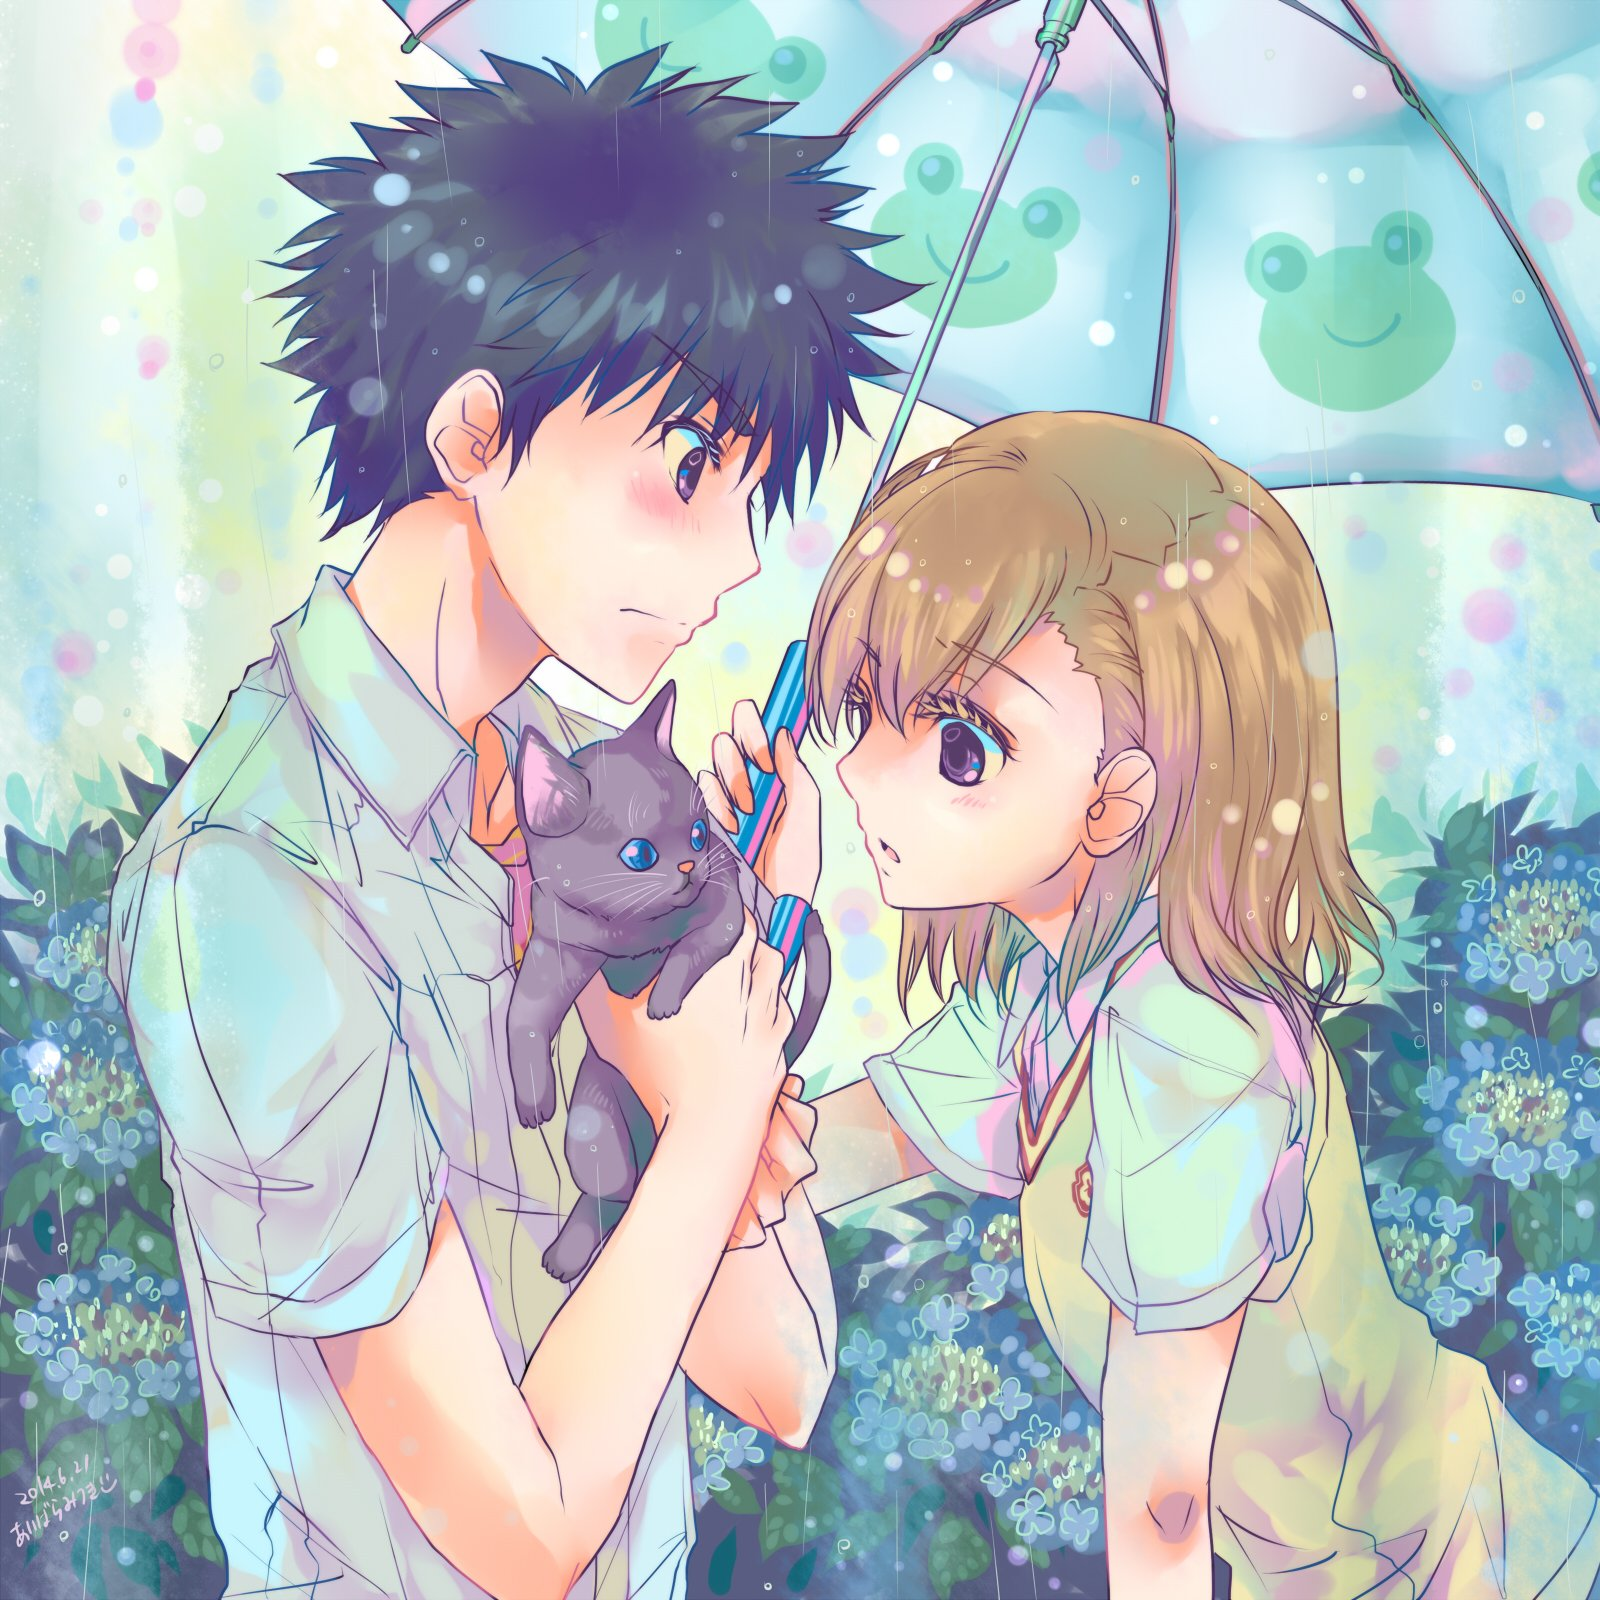 Umbrella anime couple cat cute girl boy rain love wallpaper